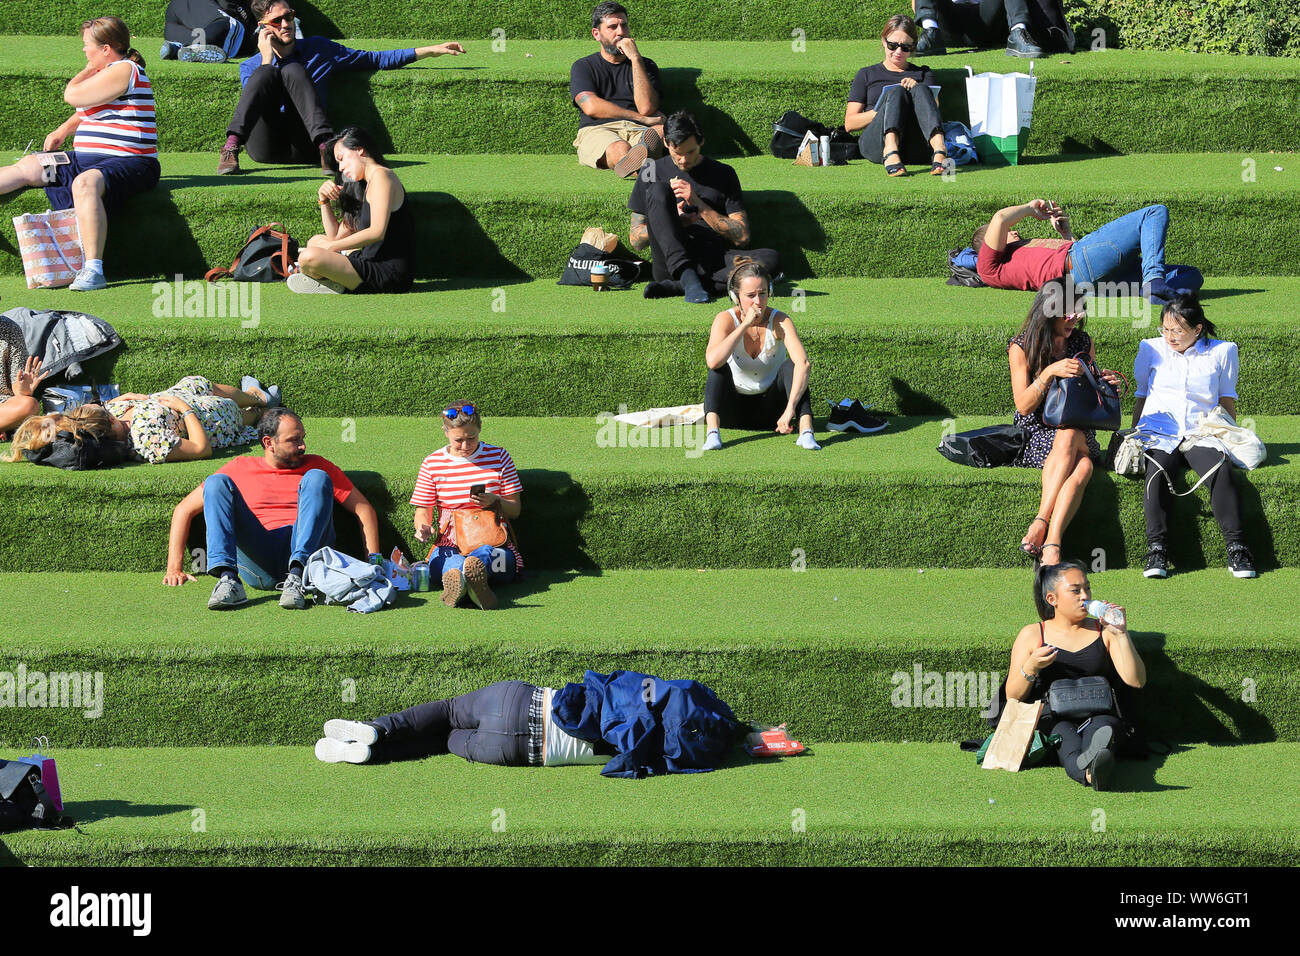 London, UK, 13th Sep 2019. An early autumn mini heat wave with warm sunshine brings out sunbathers by the Regent's Canal at Granary Square near King's Cross in London this afternoon. Credit: Imageplotter/Alamy Live News Stock Photo